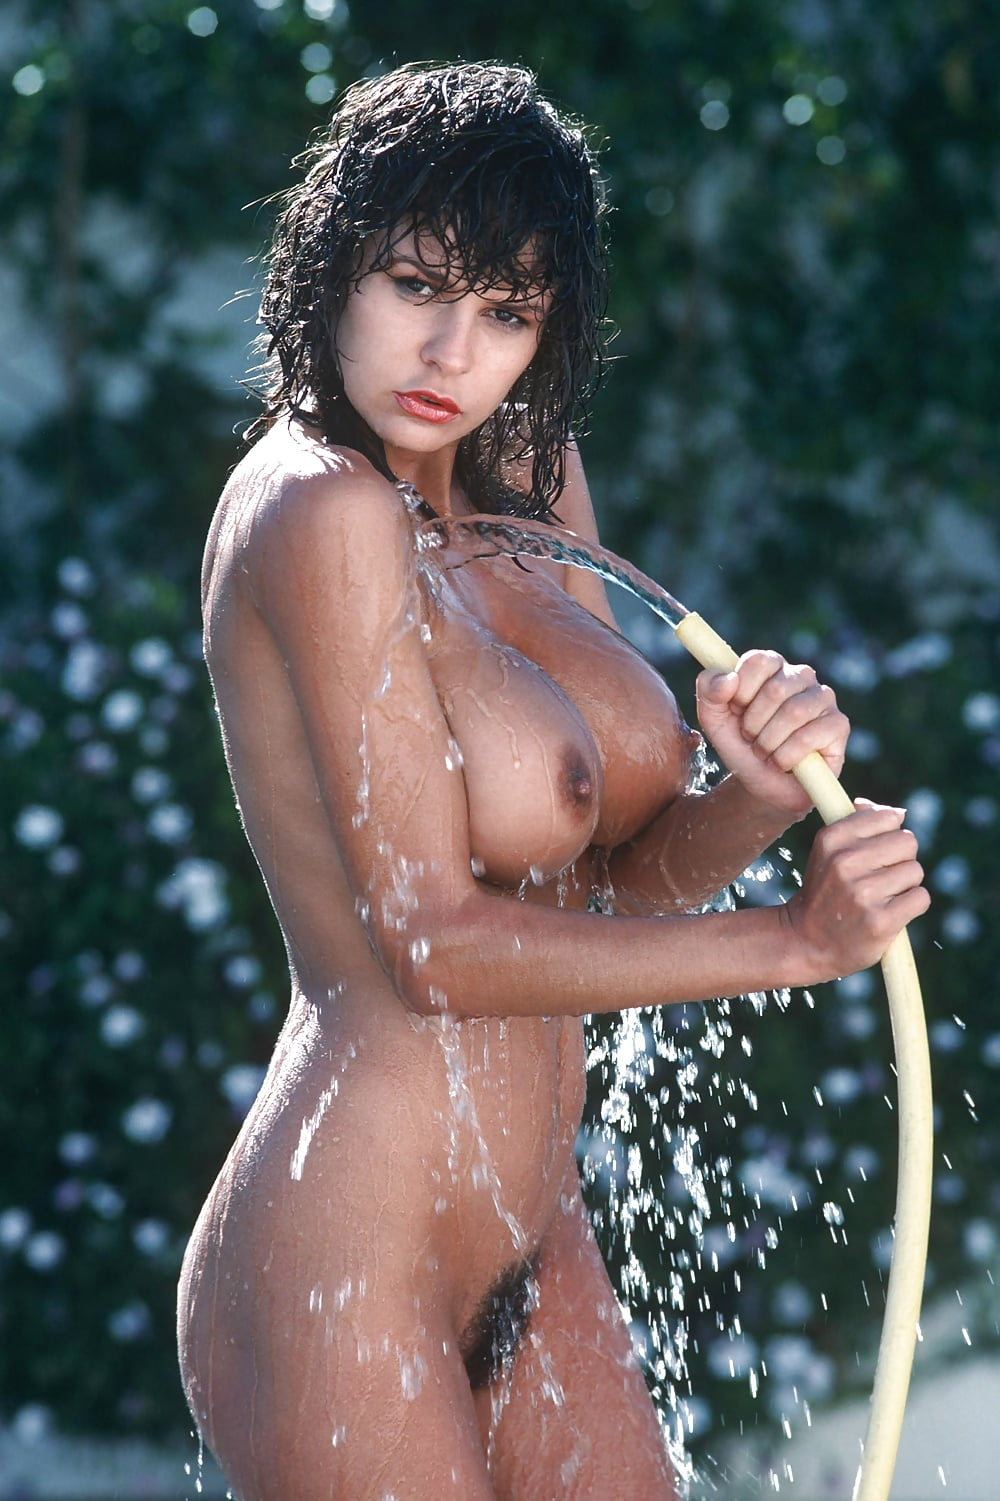 Donna rice nude, fappening, sexy photos, uncensored